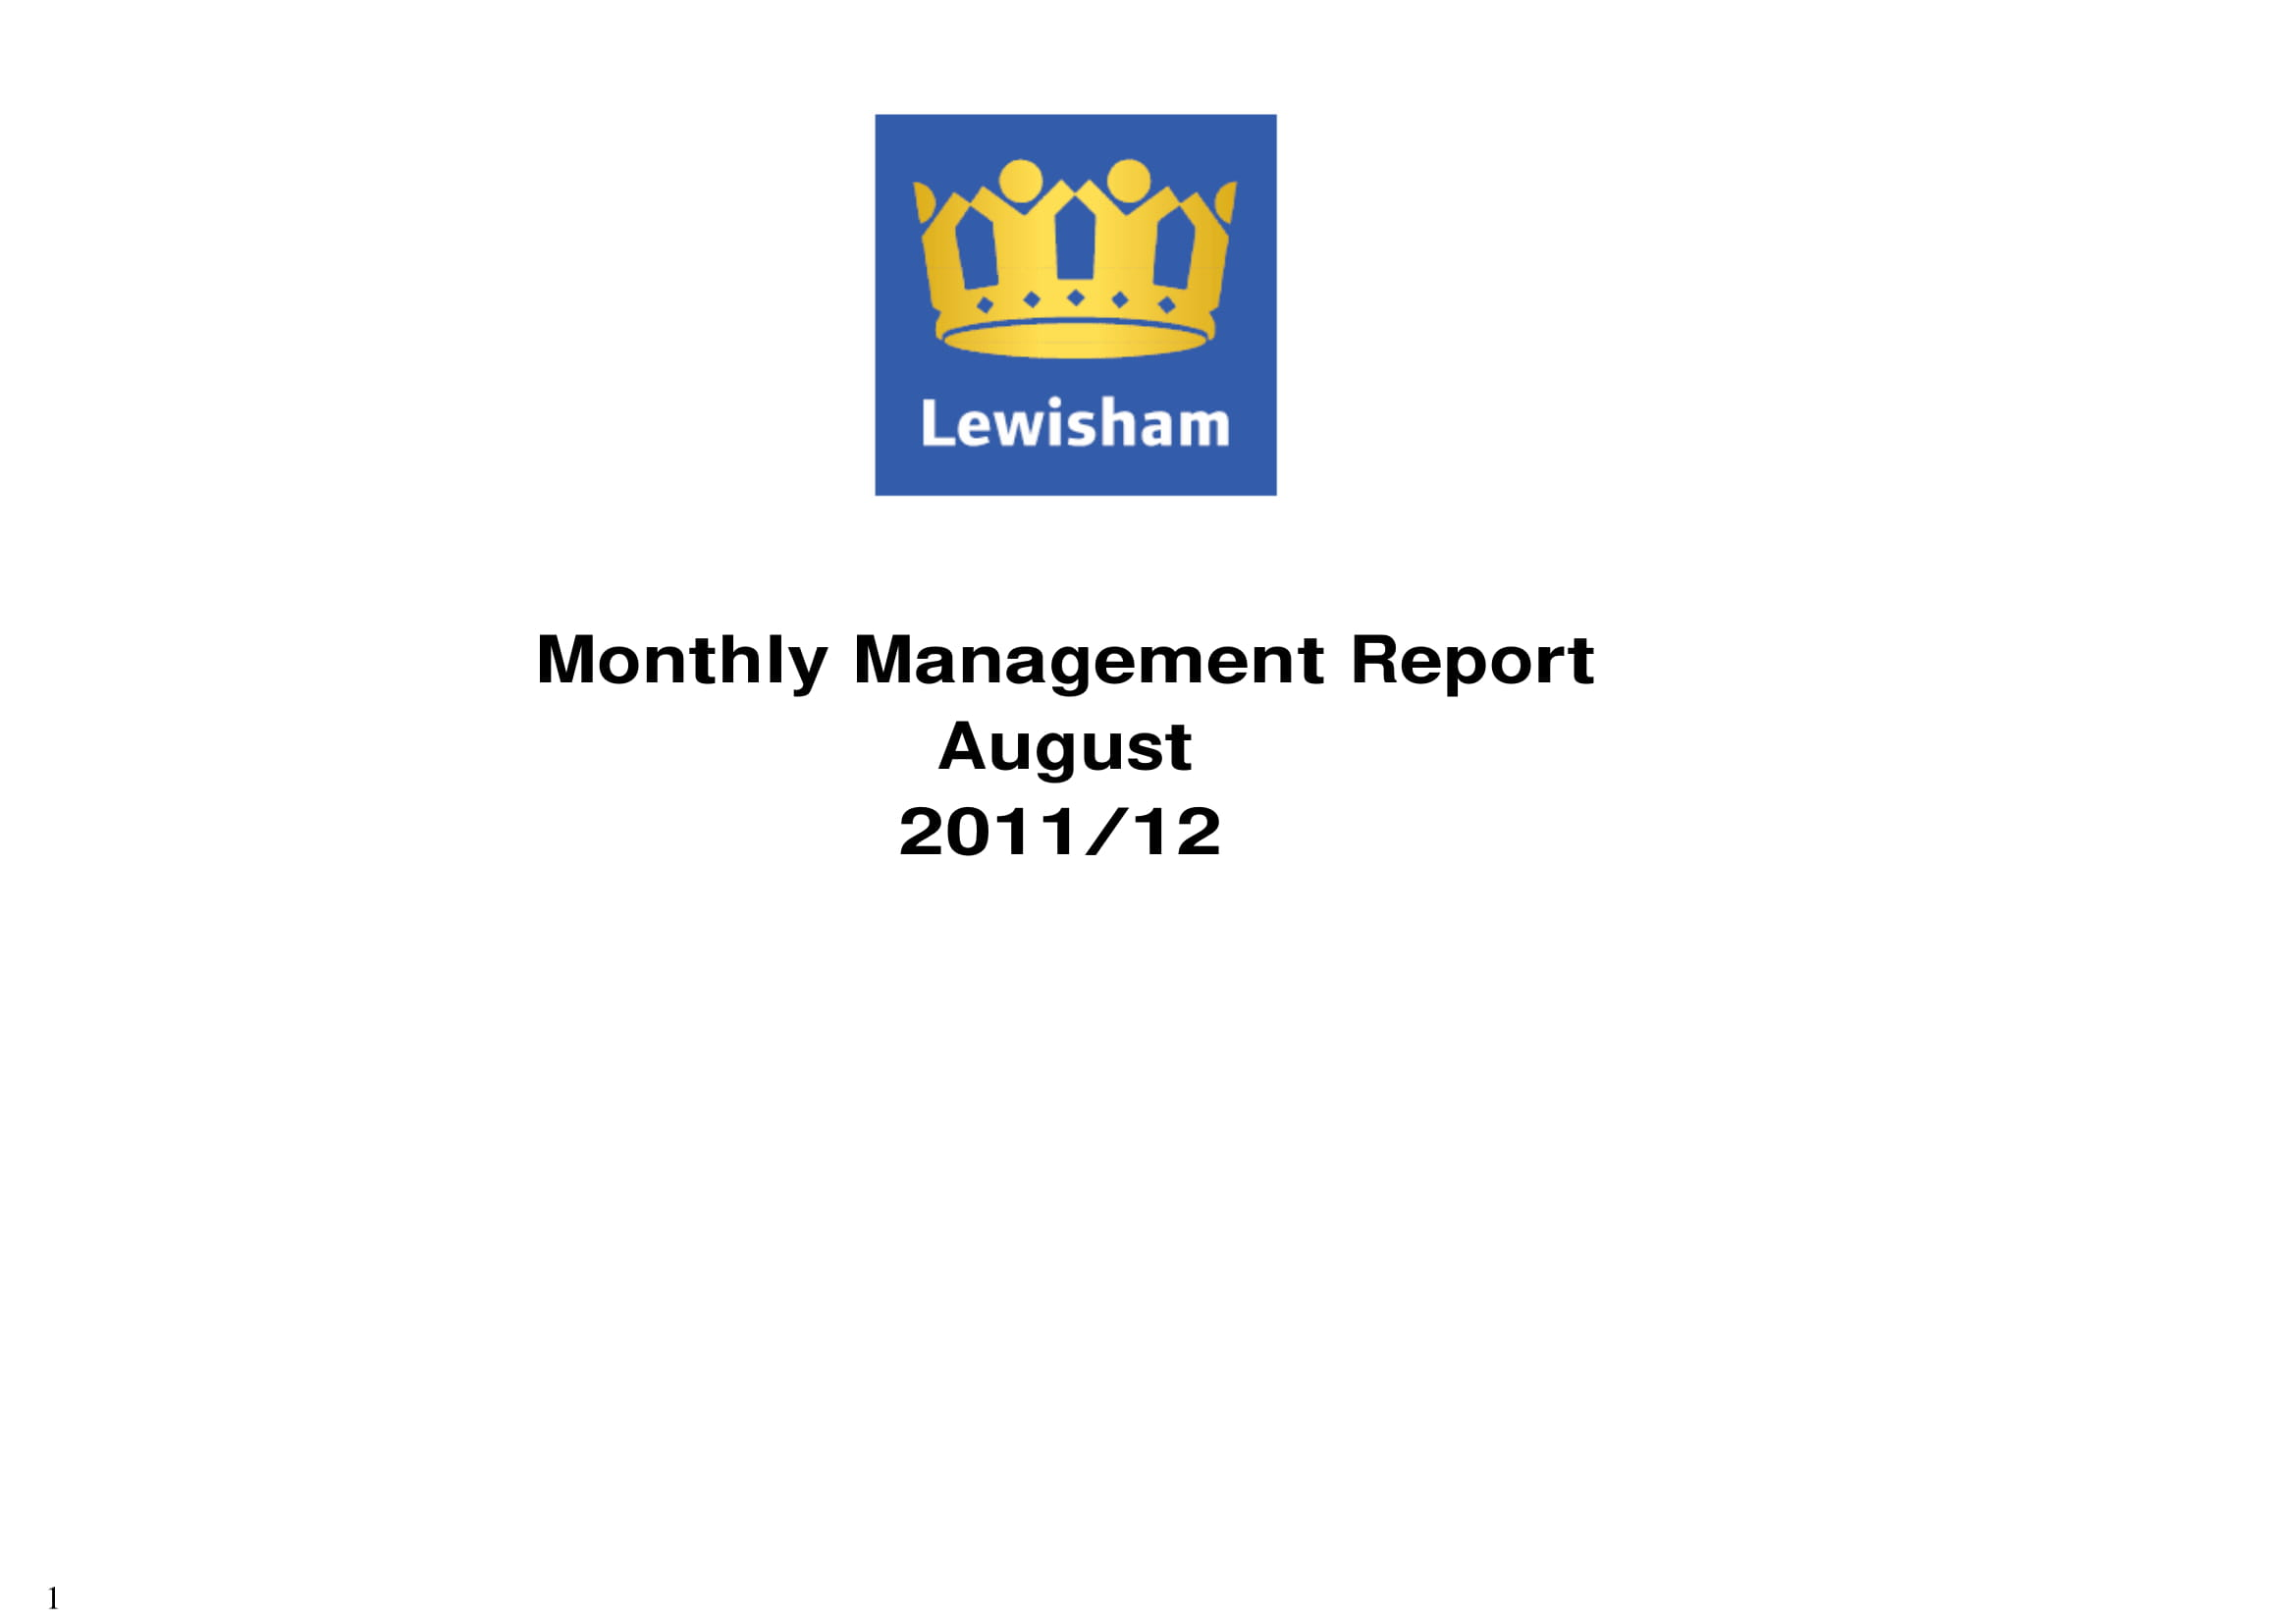 monthly business management report example 01